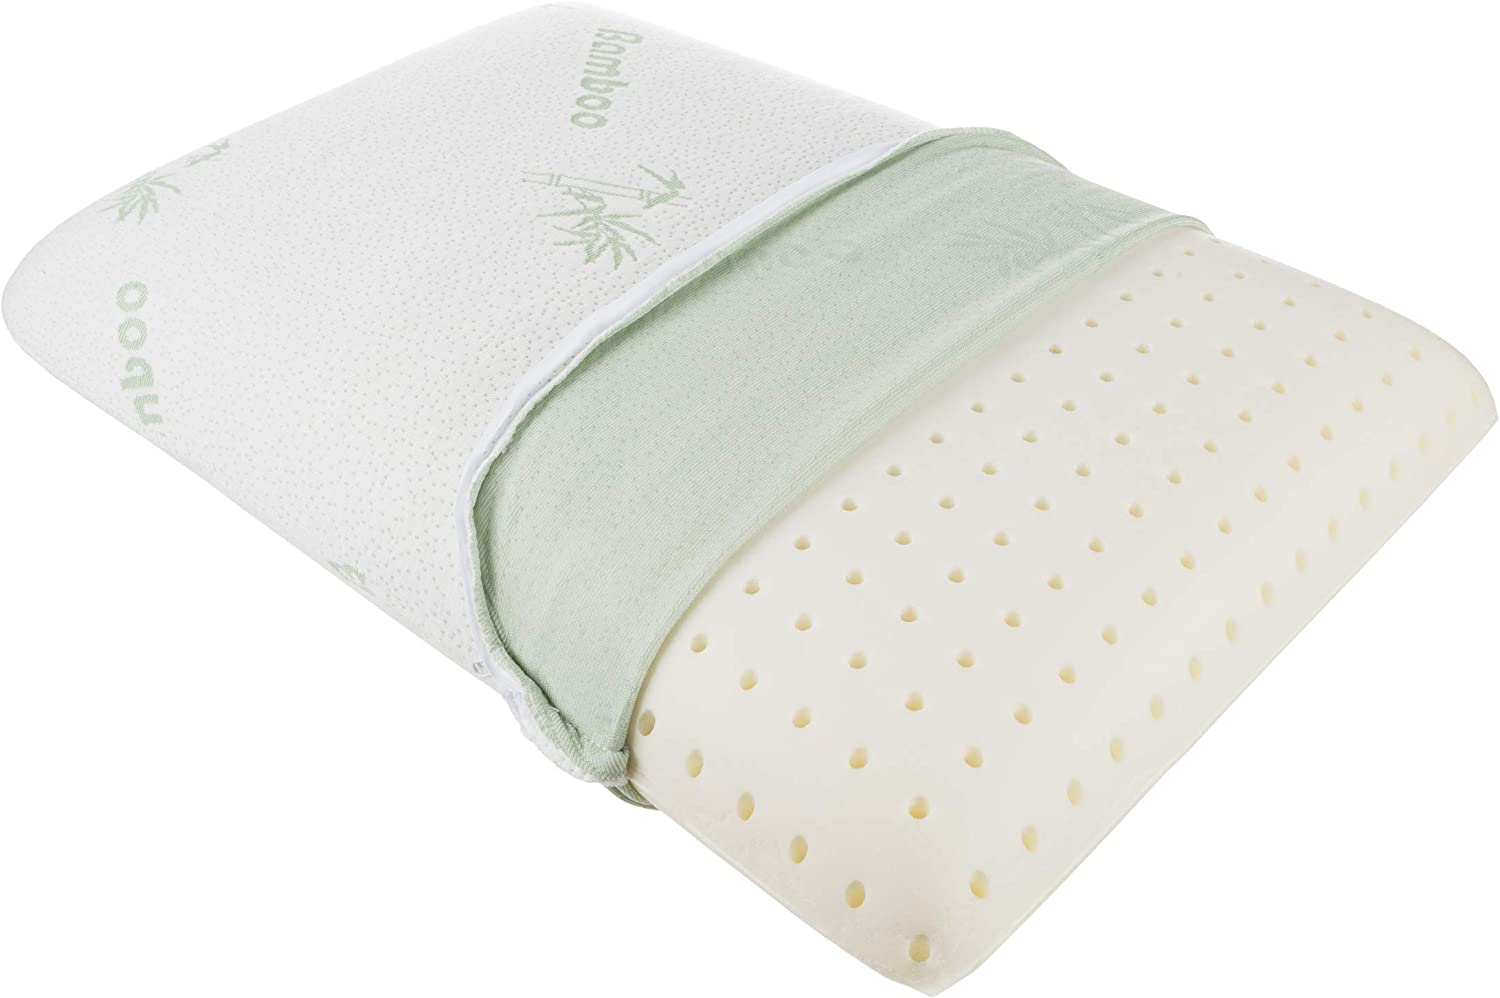 Lavish Home 82-TEX1048 Memory Foam Pillow with Soft, Removable Bamboo Fiber Cover and Ventilation Holes